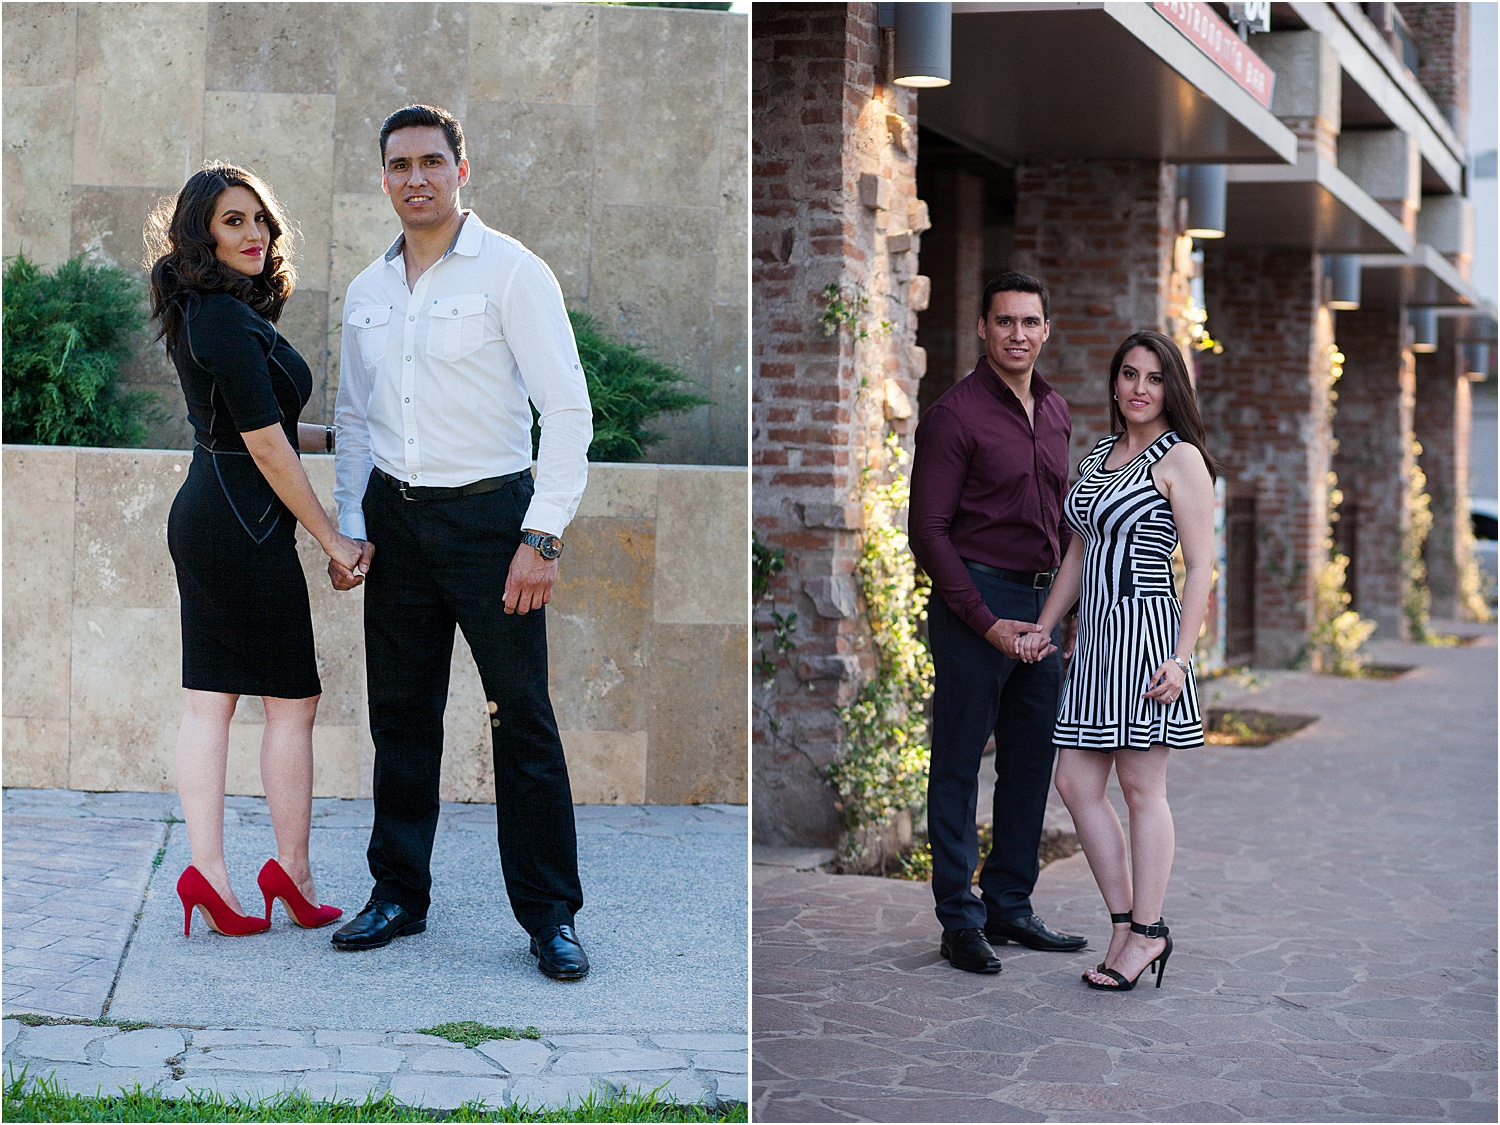 19 - Guide to the Best Poses for Engagement Photos